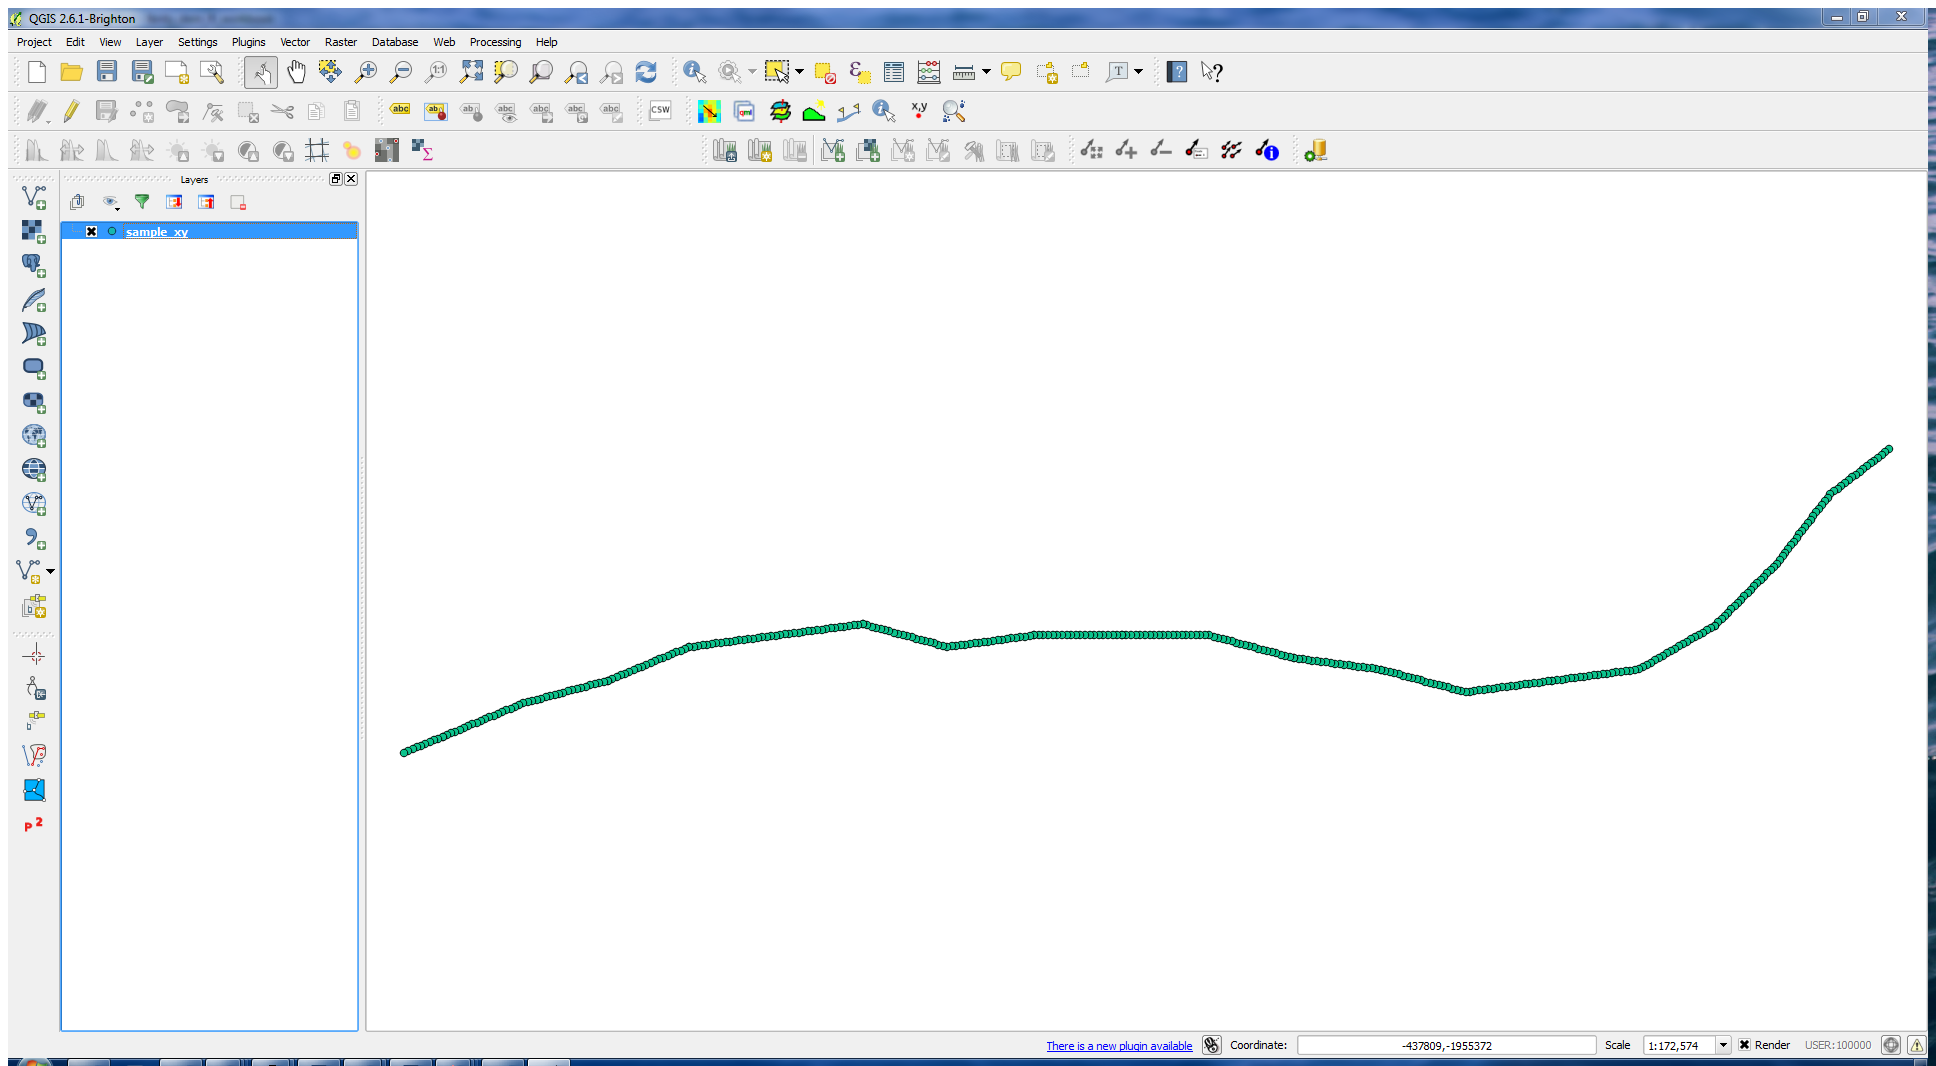 sample_xy.shp in QGIS